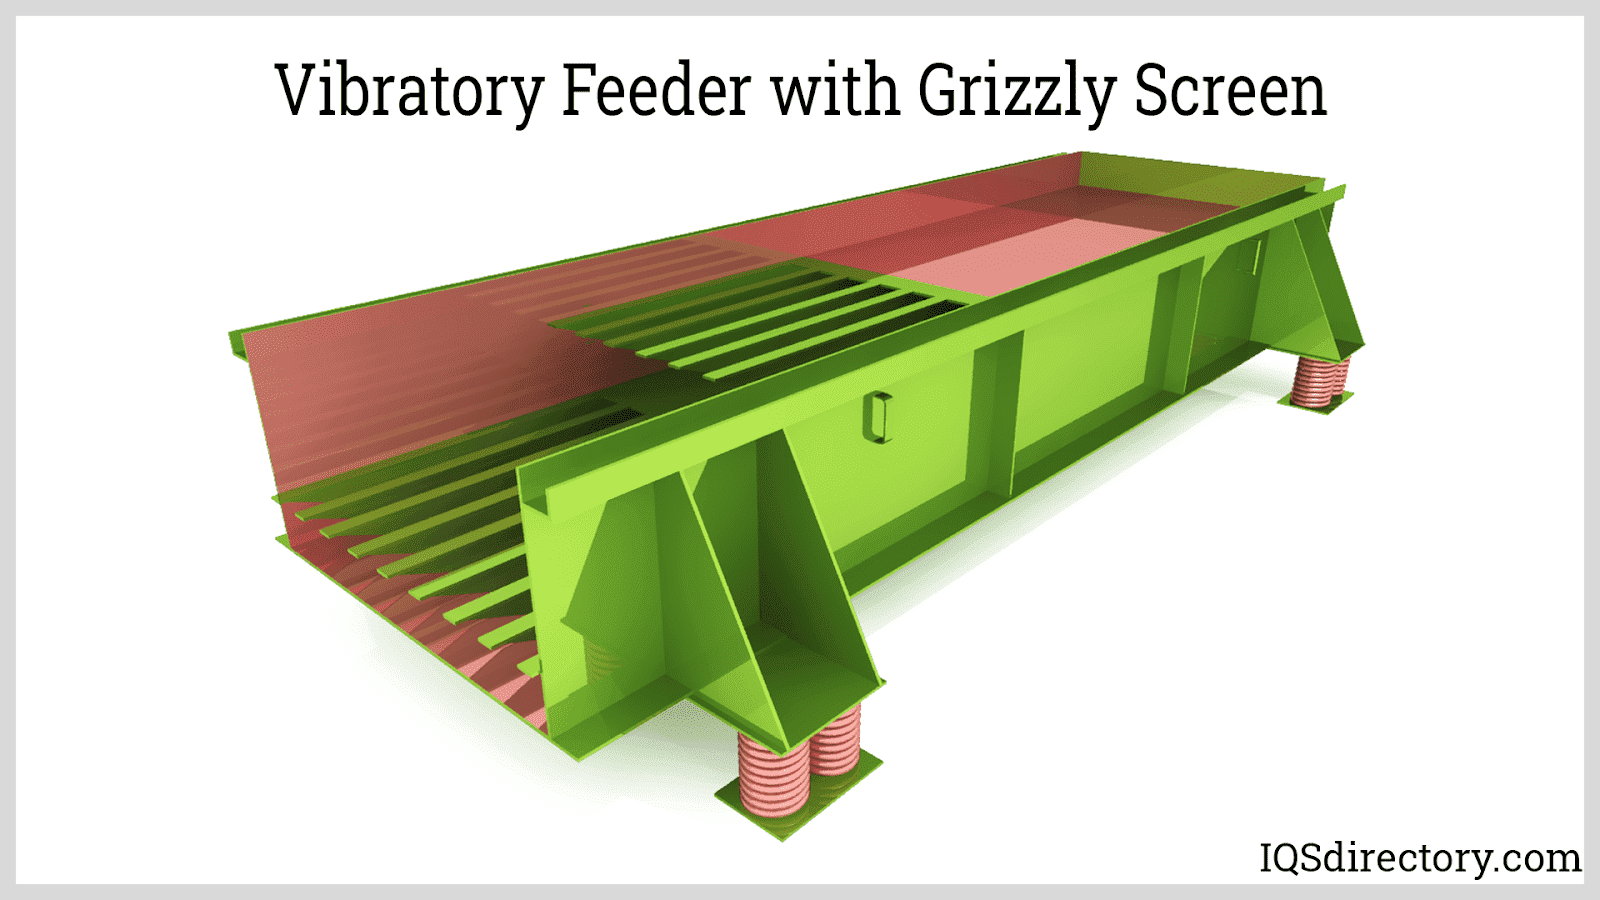 Vibratory Feeder with Grizzly Screen